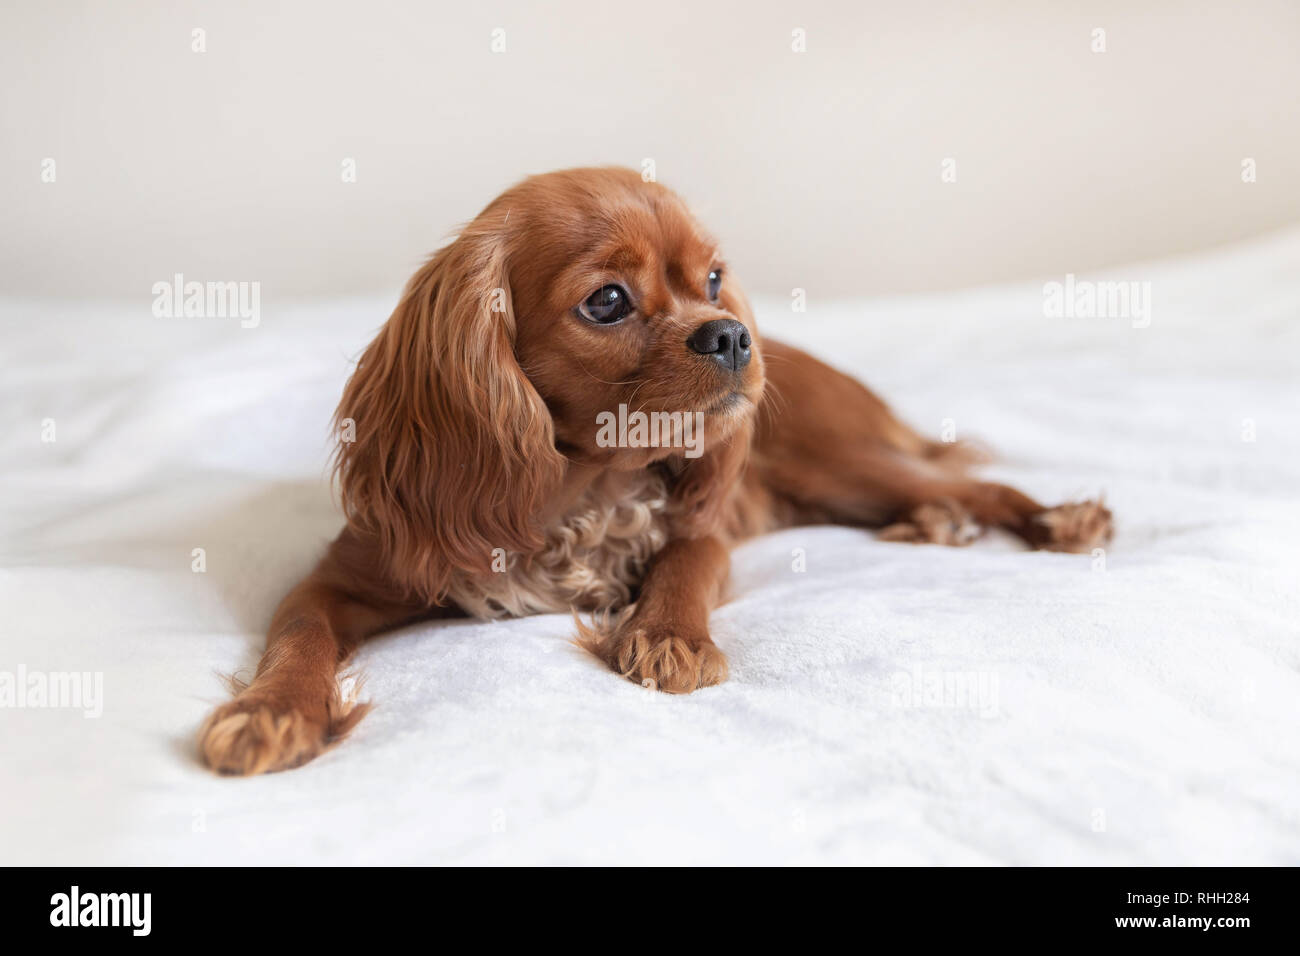 Cute puppy resting on on the white blanket Stock Photo